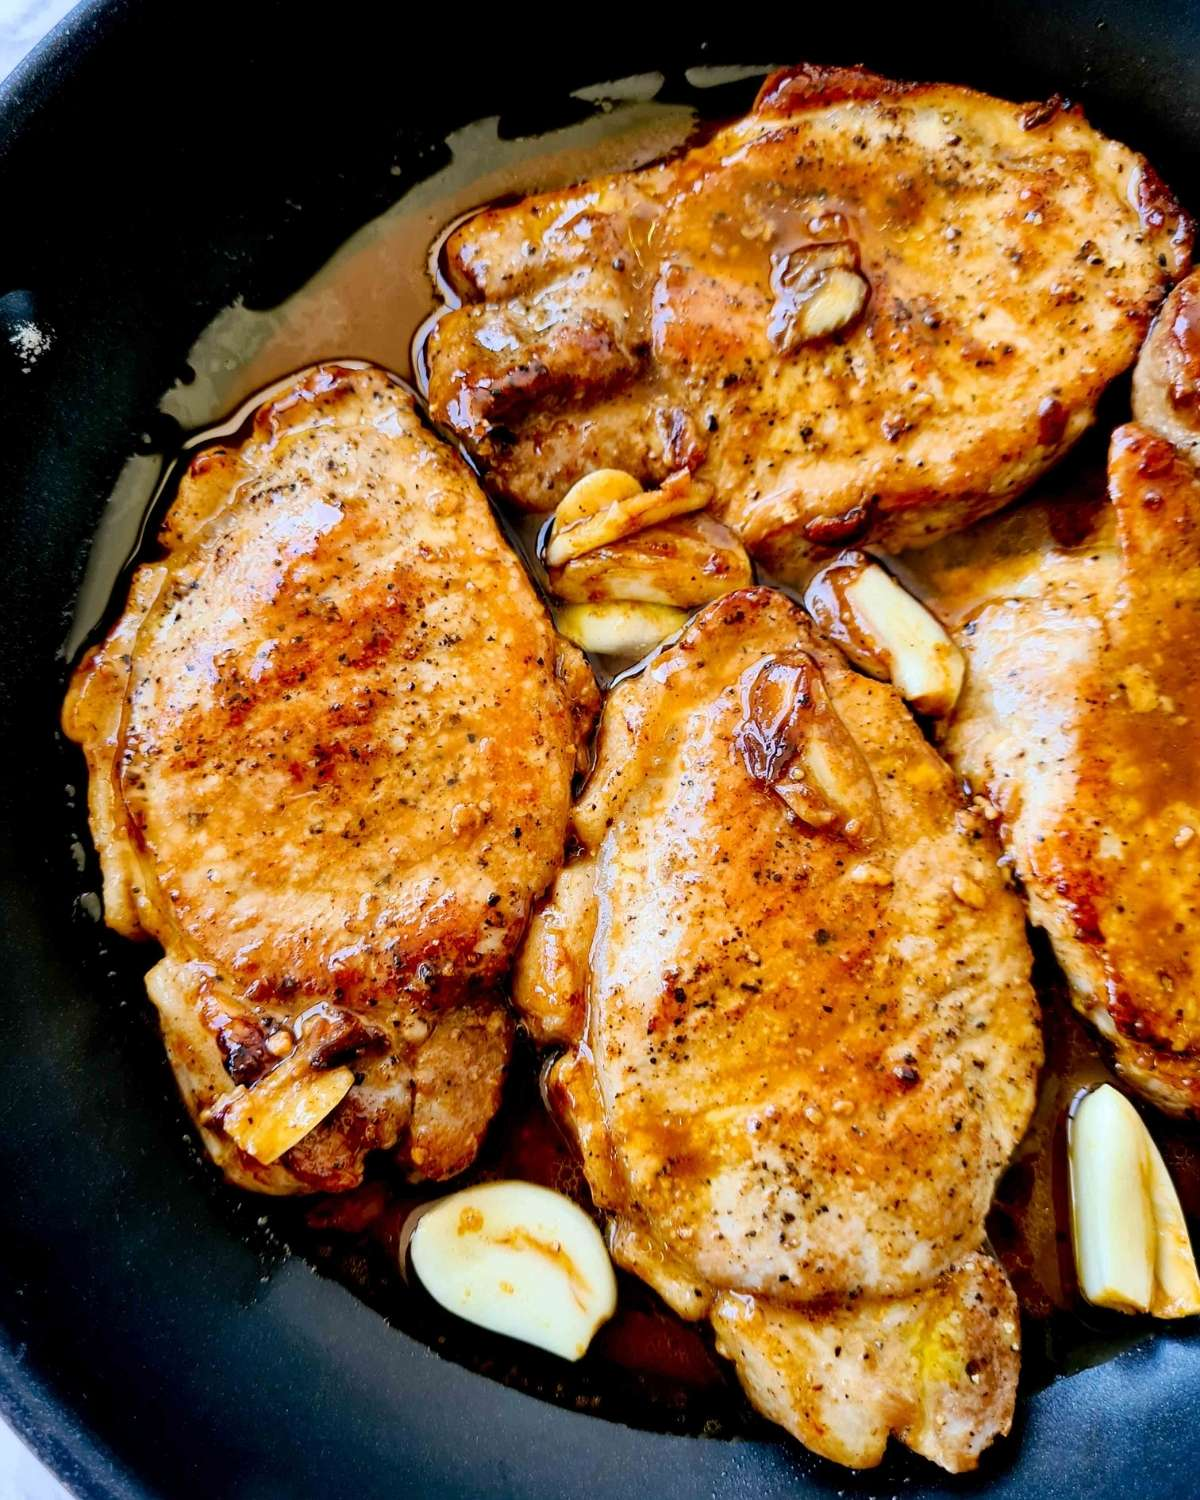 Close up of cooked pork chops in sauce